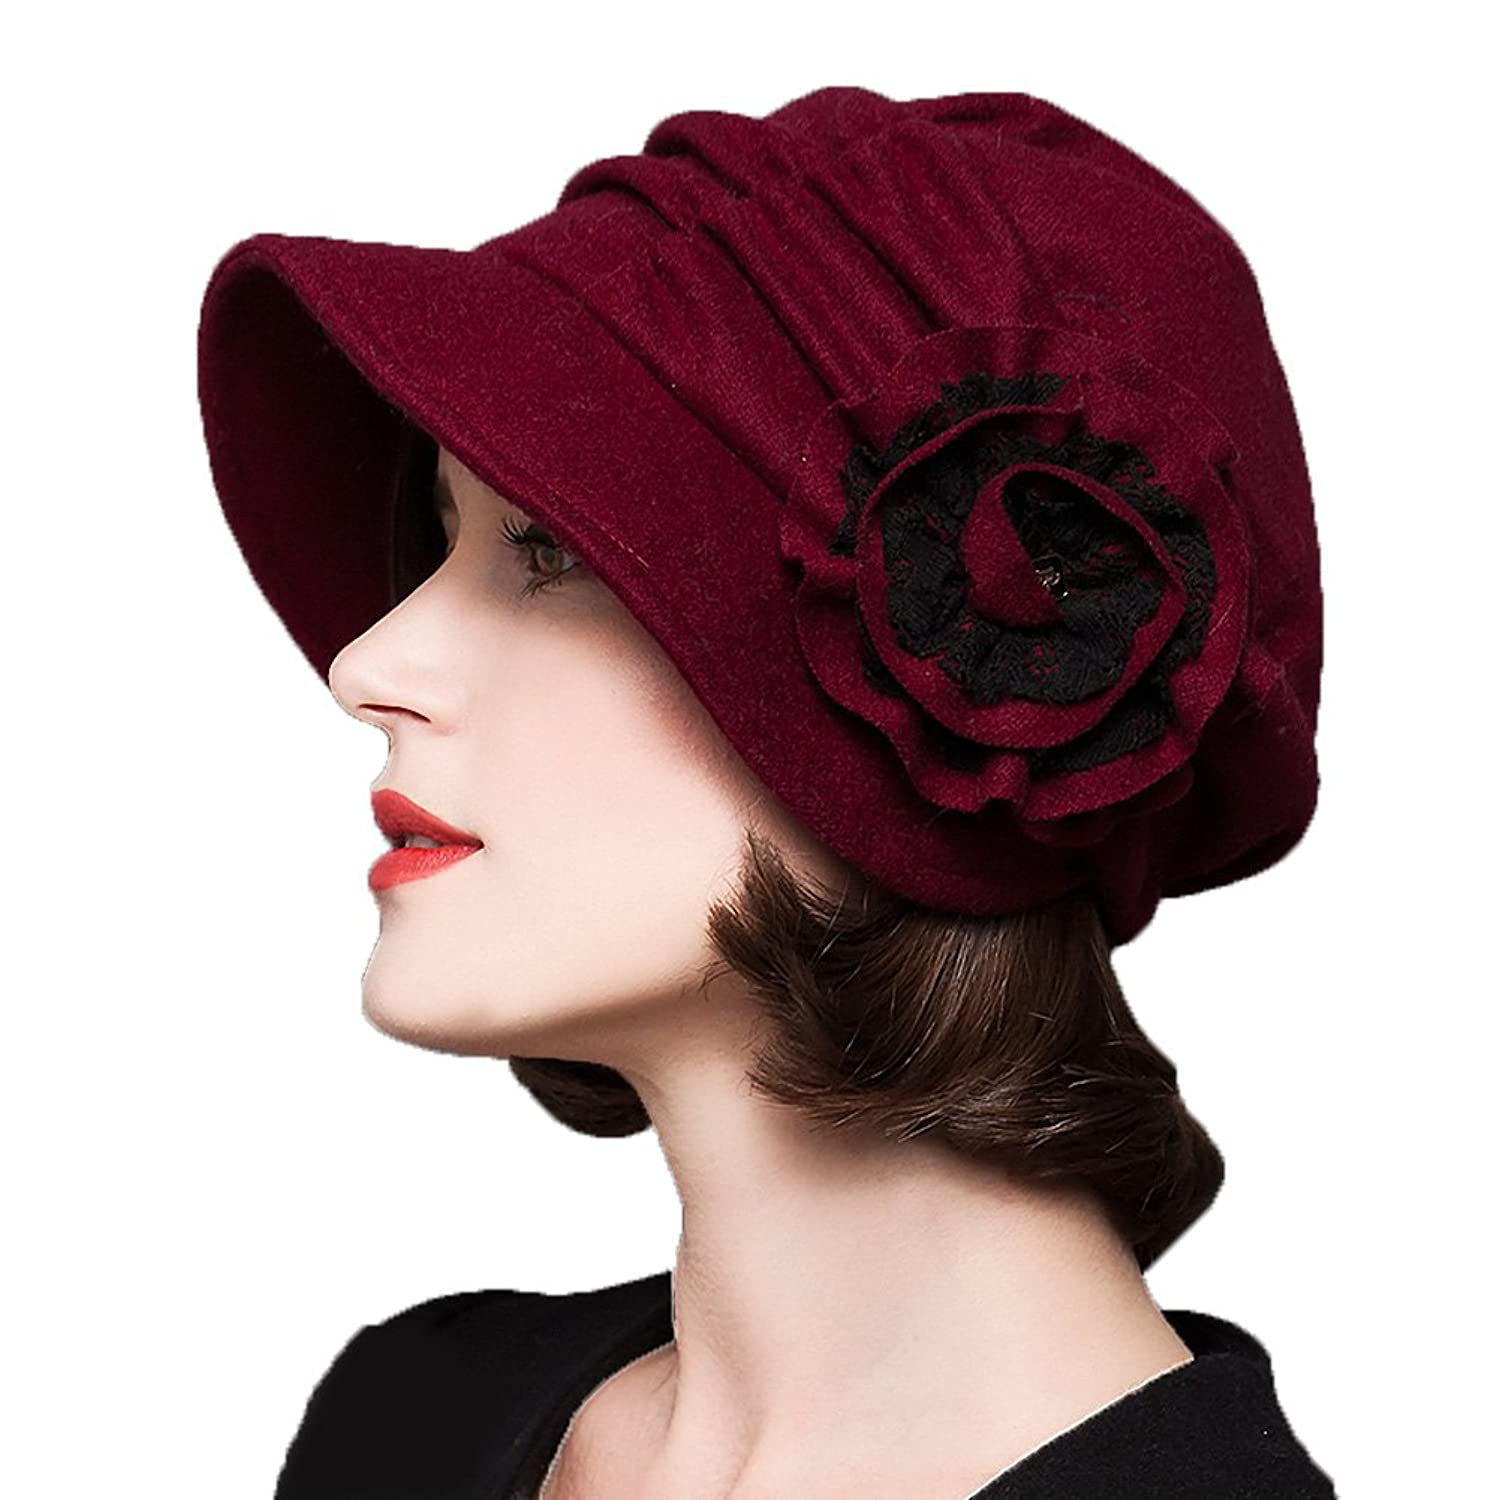 1930s Style Hats | 30s Ladies Hats  Decorative Flowers Wool Beret $28.40 AT vintagedancer.com